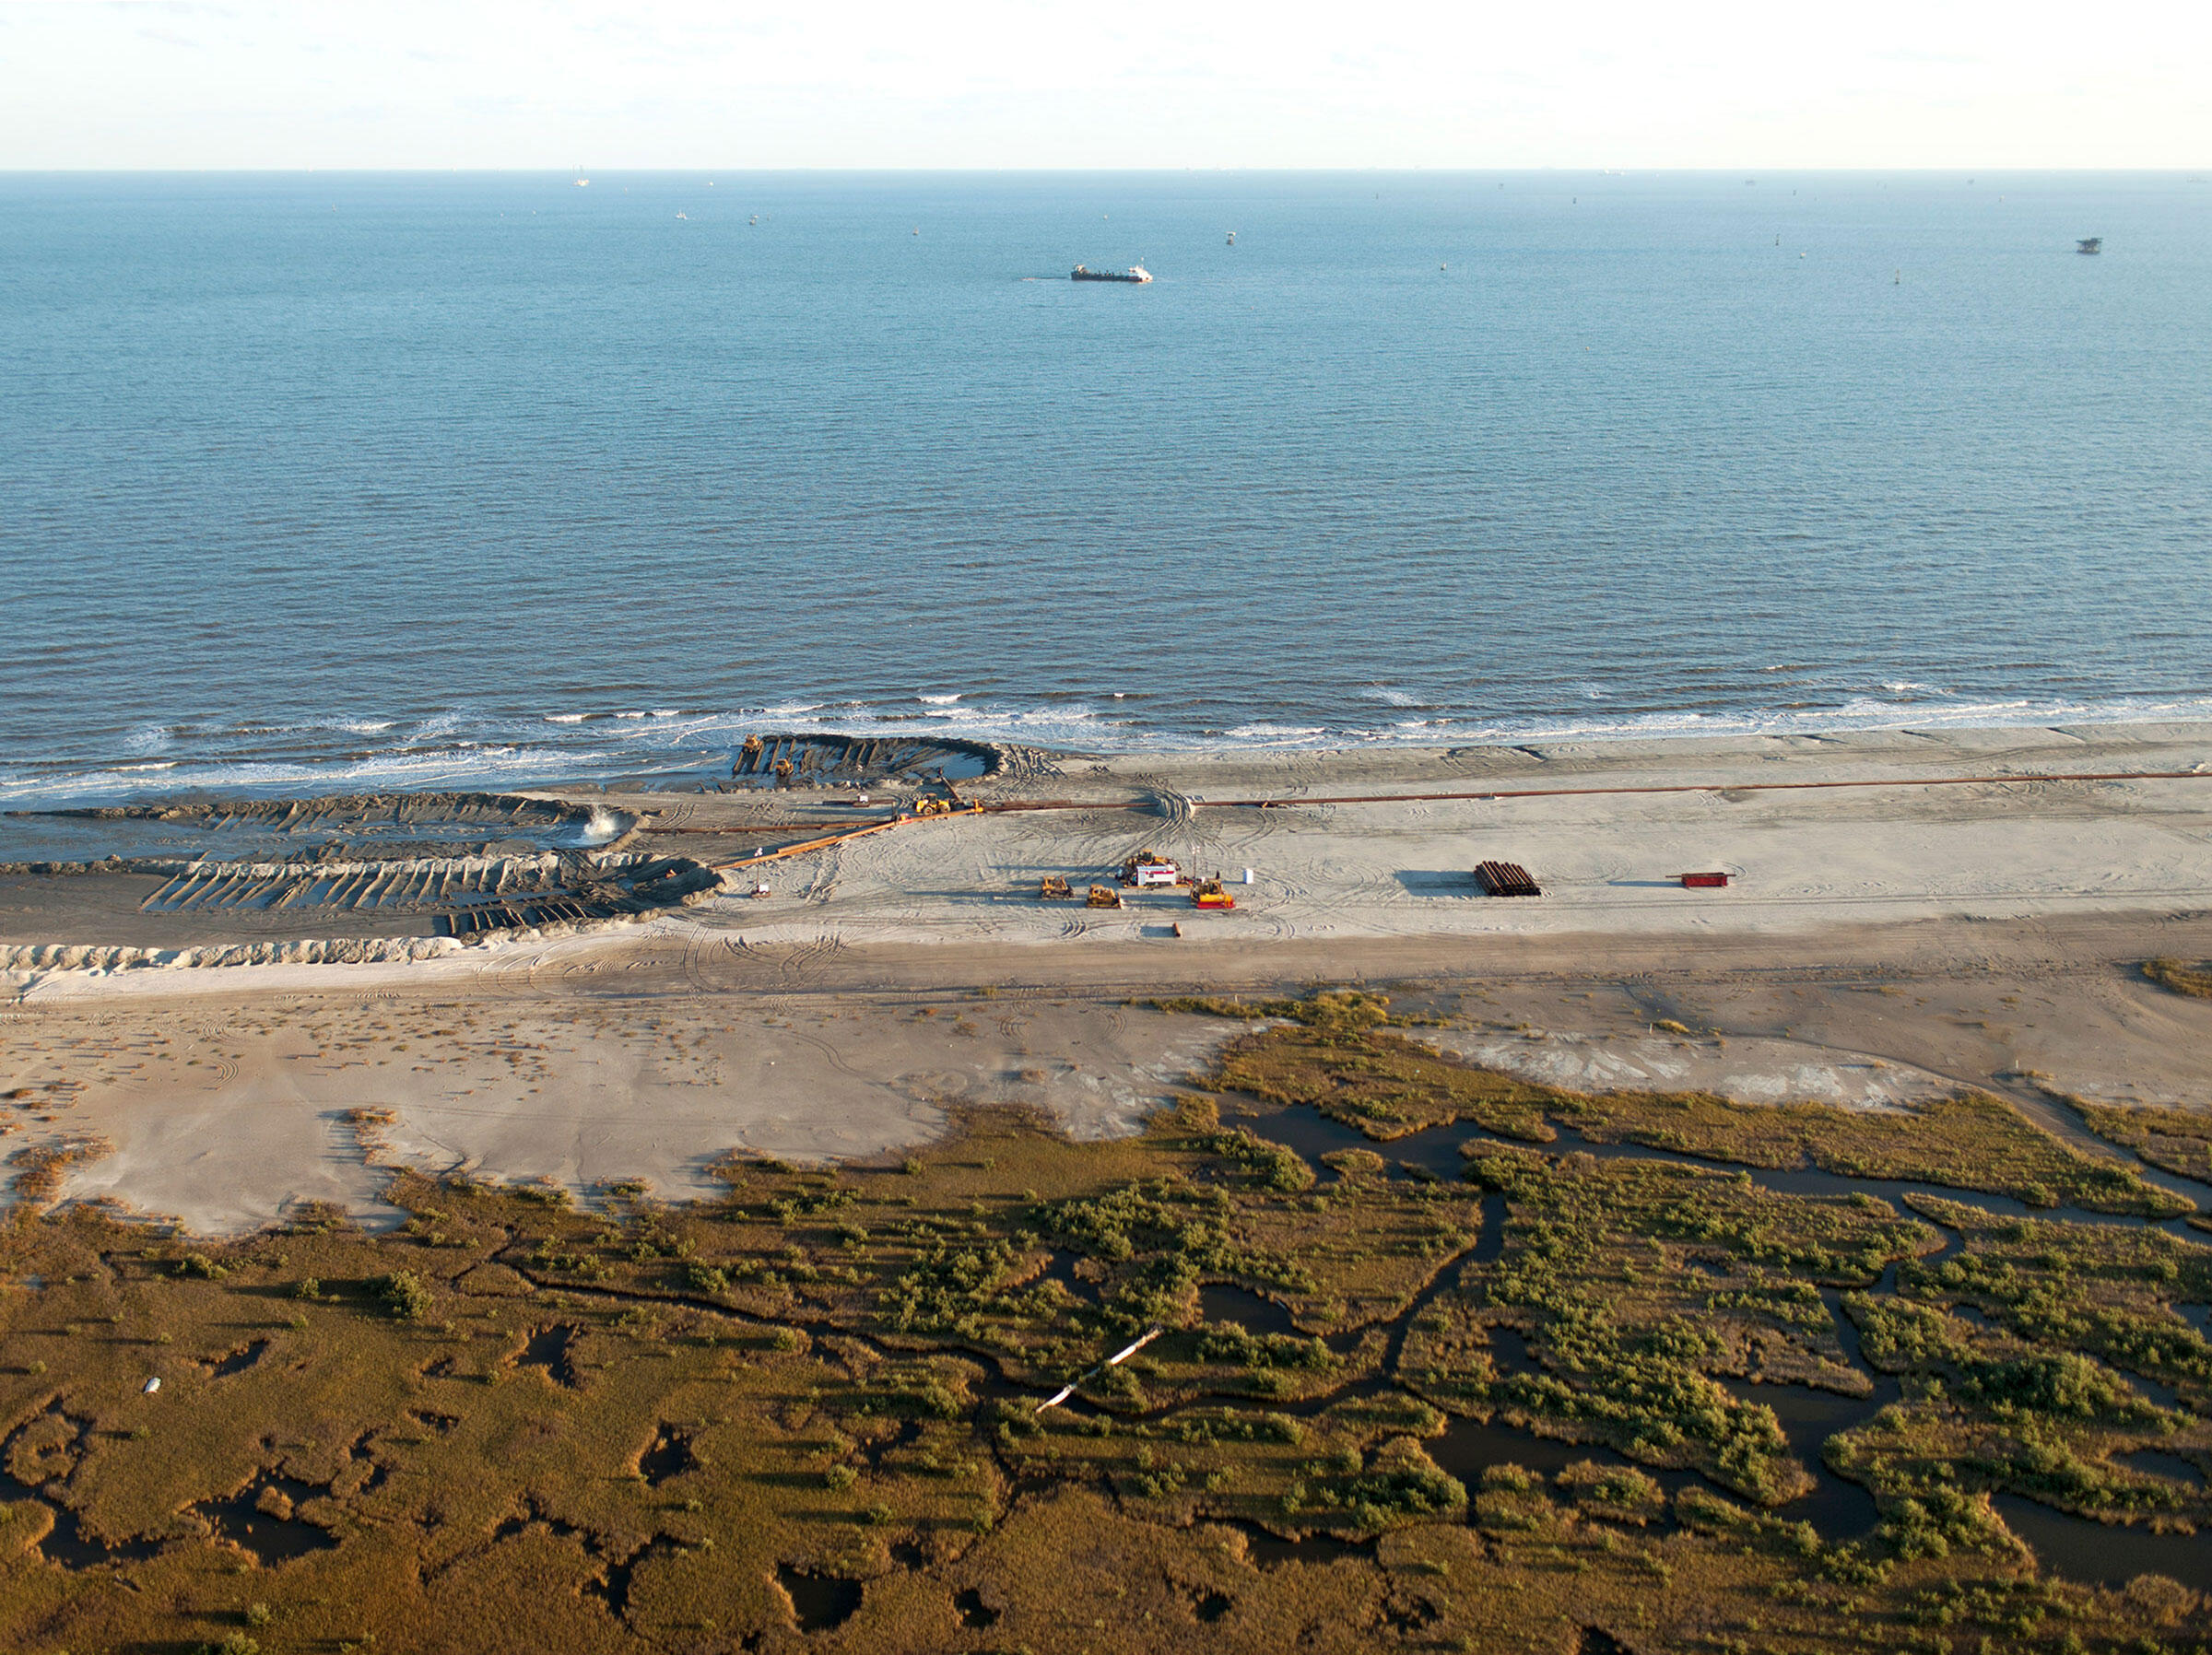 Constructing more than 1,000 acres of new barrier, dune, and beach habitat on Elmer's Island involved bringing in 9 million cubic yards of sand. Ben Depp